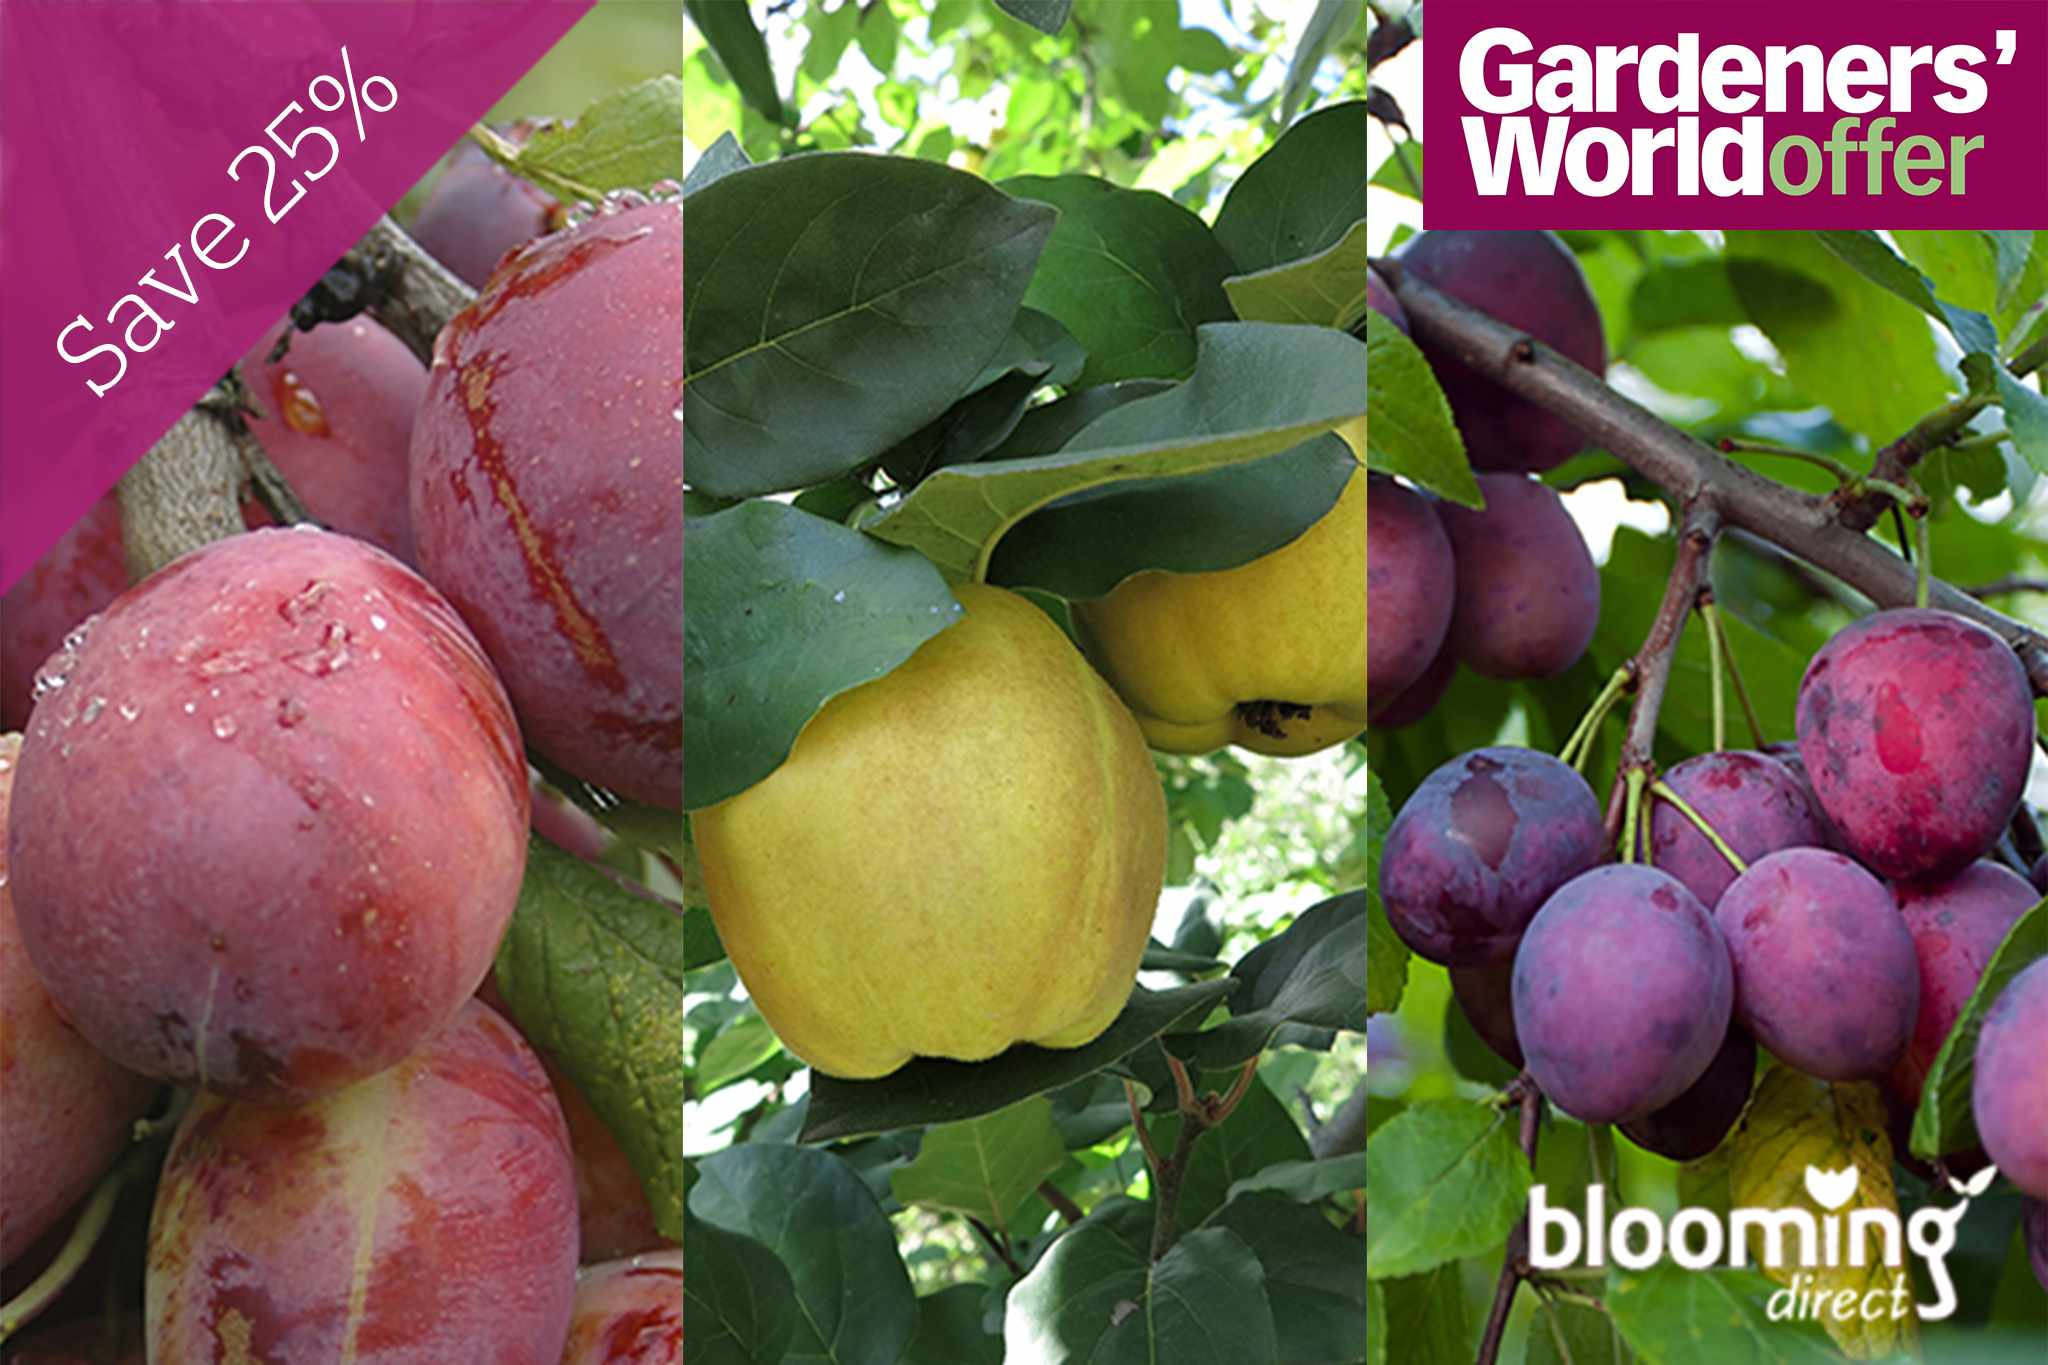 blooming-direct-promo-fruit-trees-2048-1365